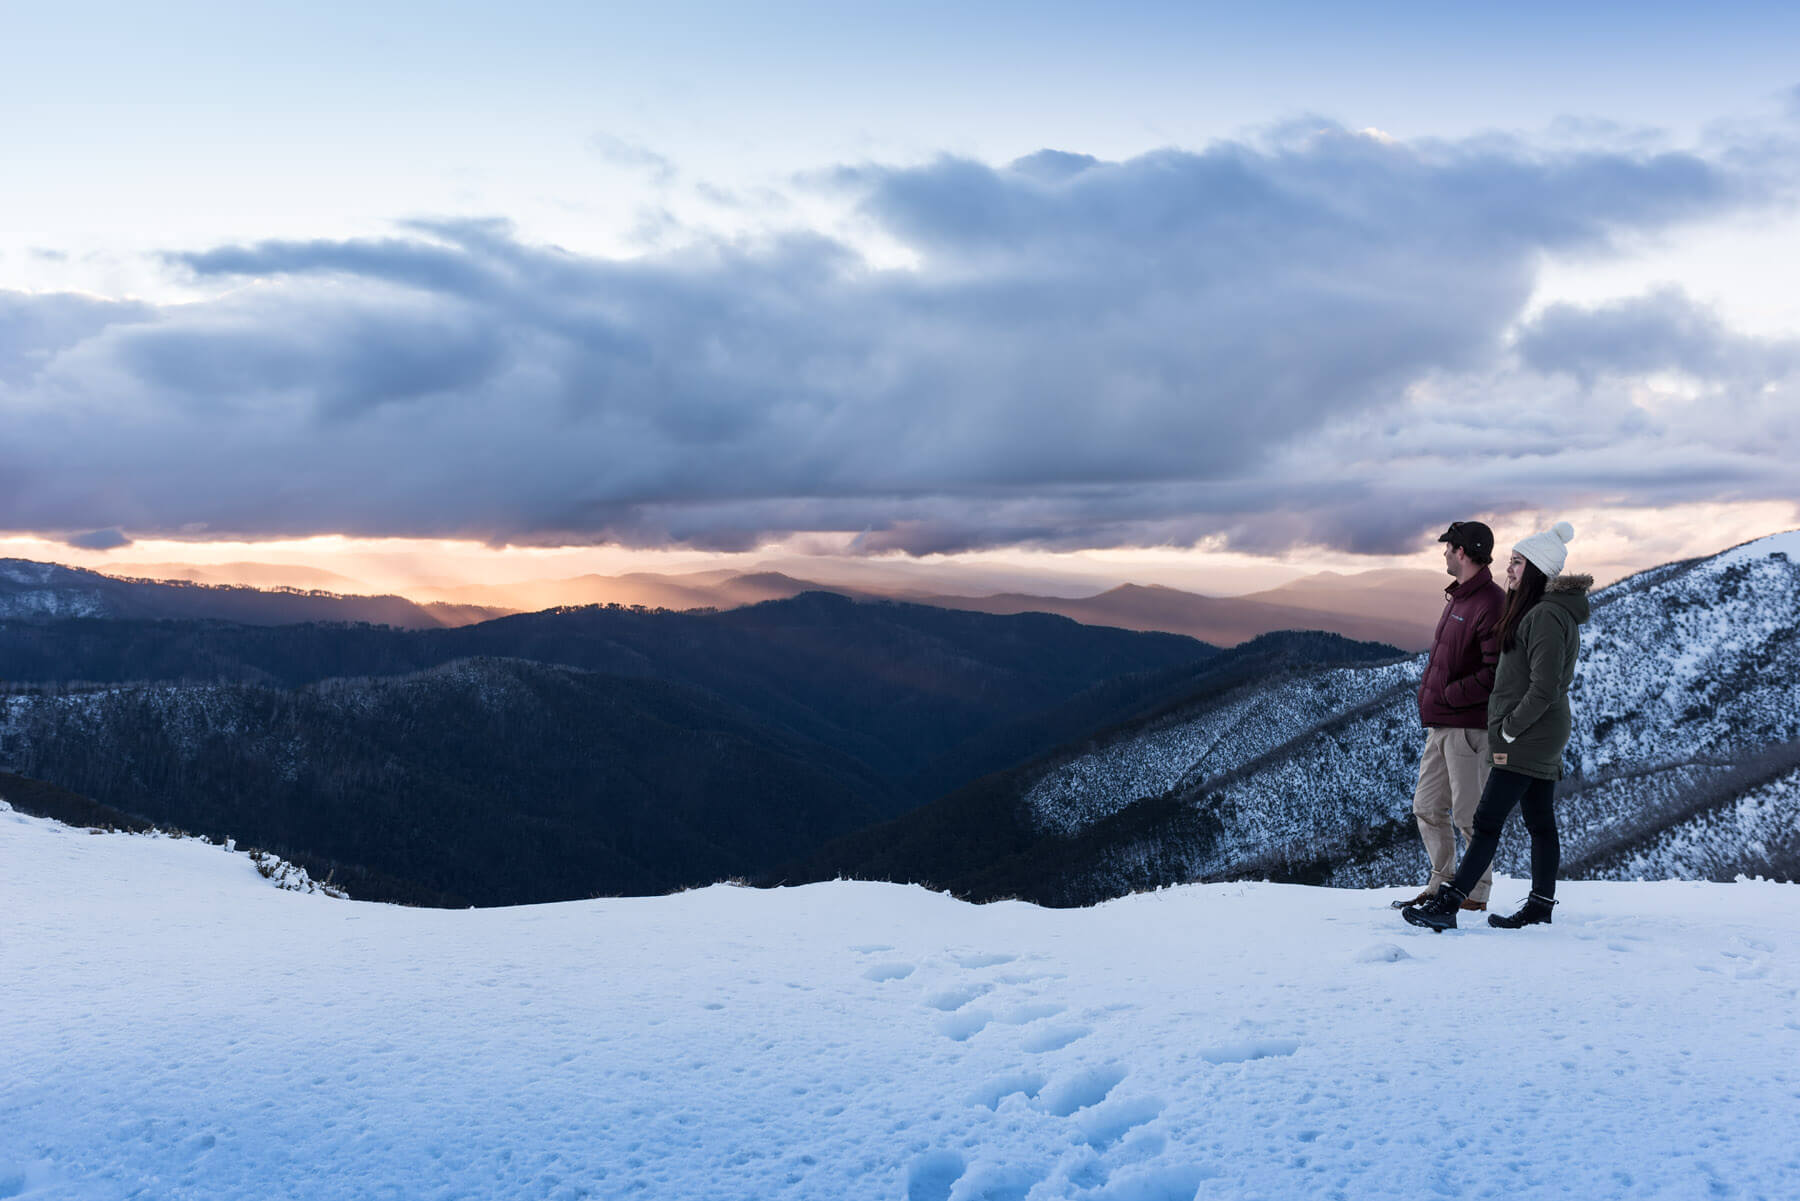 Snowy views across Mt Hotham